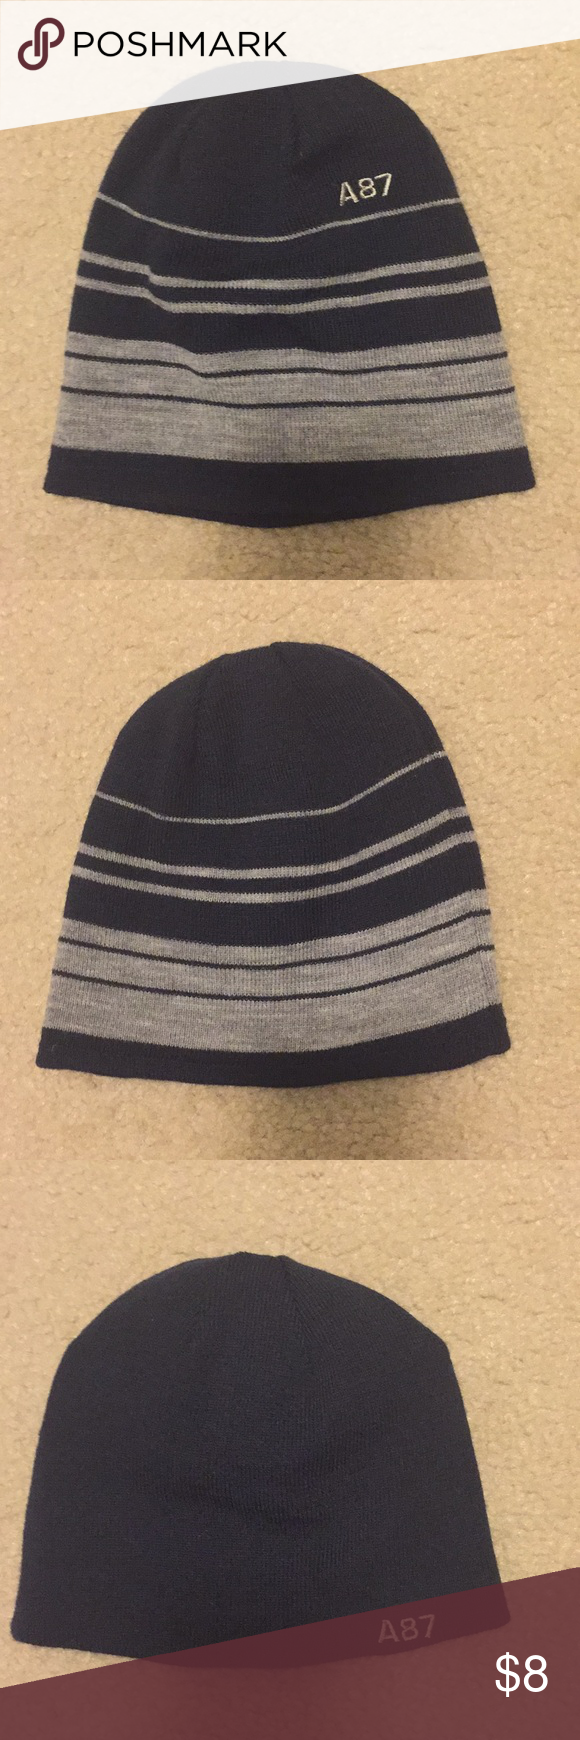 104f304767f Aeropostale Reversible Beanie Excellent used condition reversible beanie.  One side is all navy and the